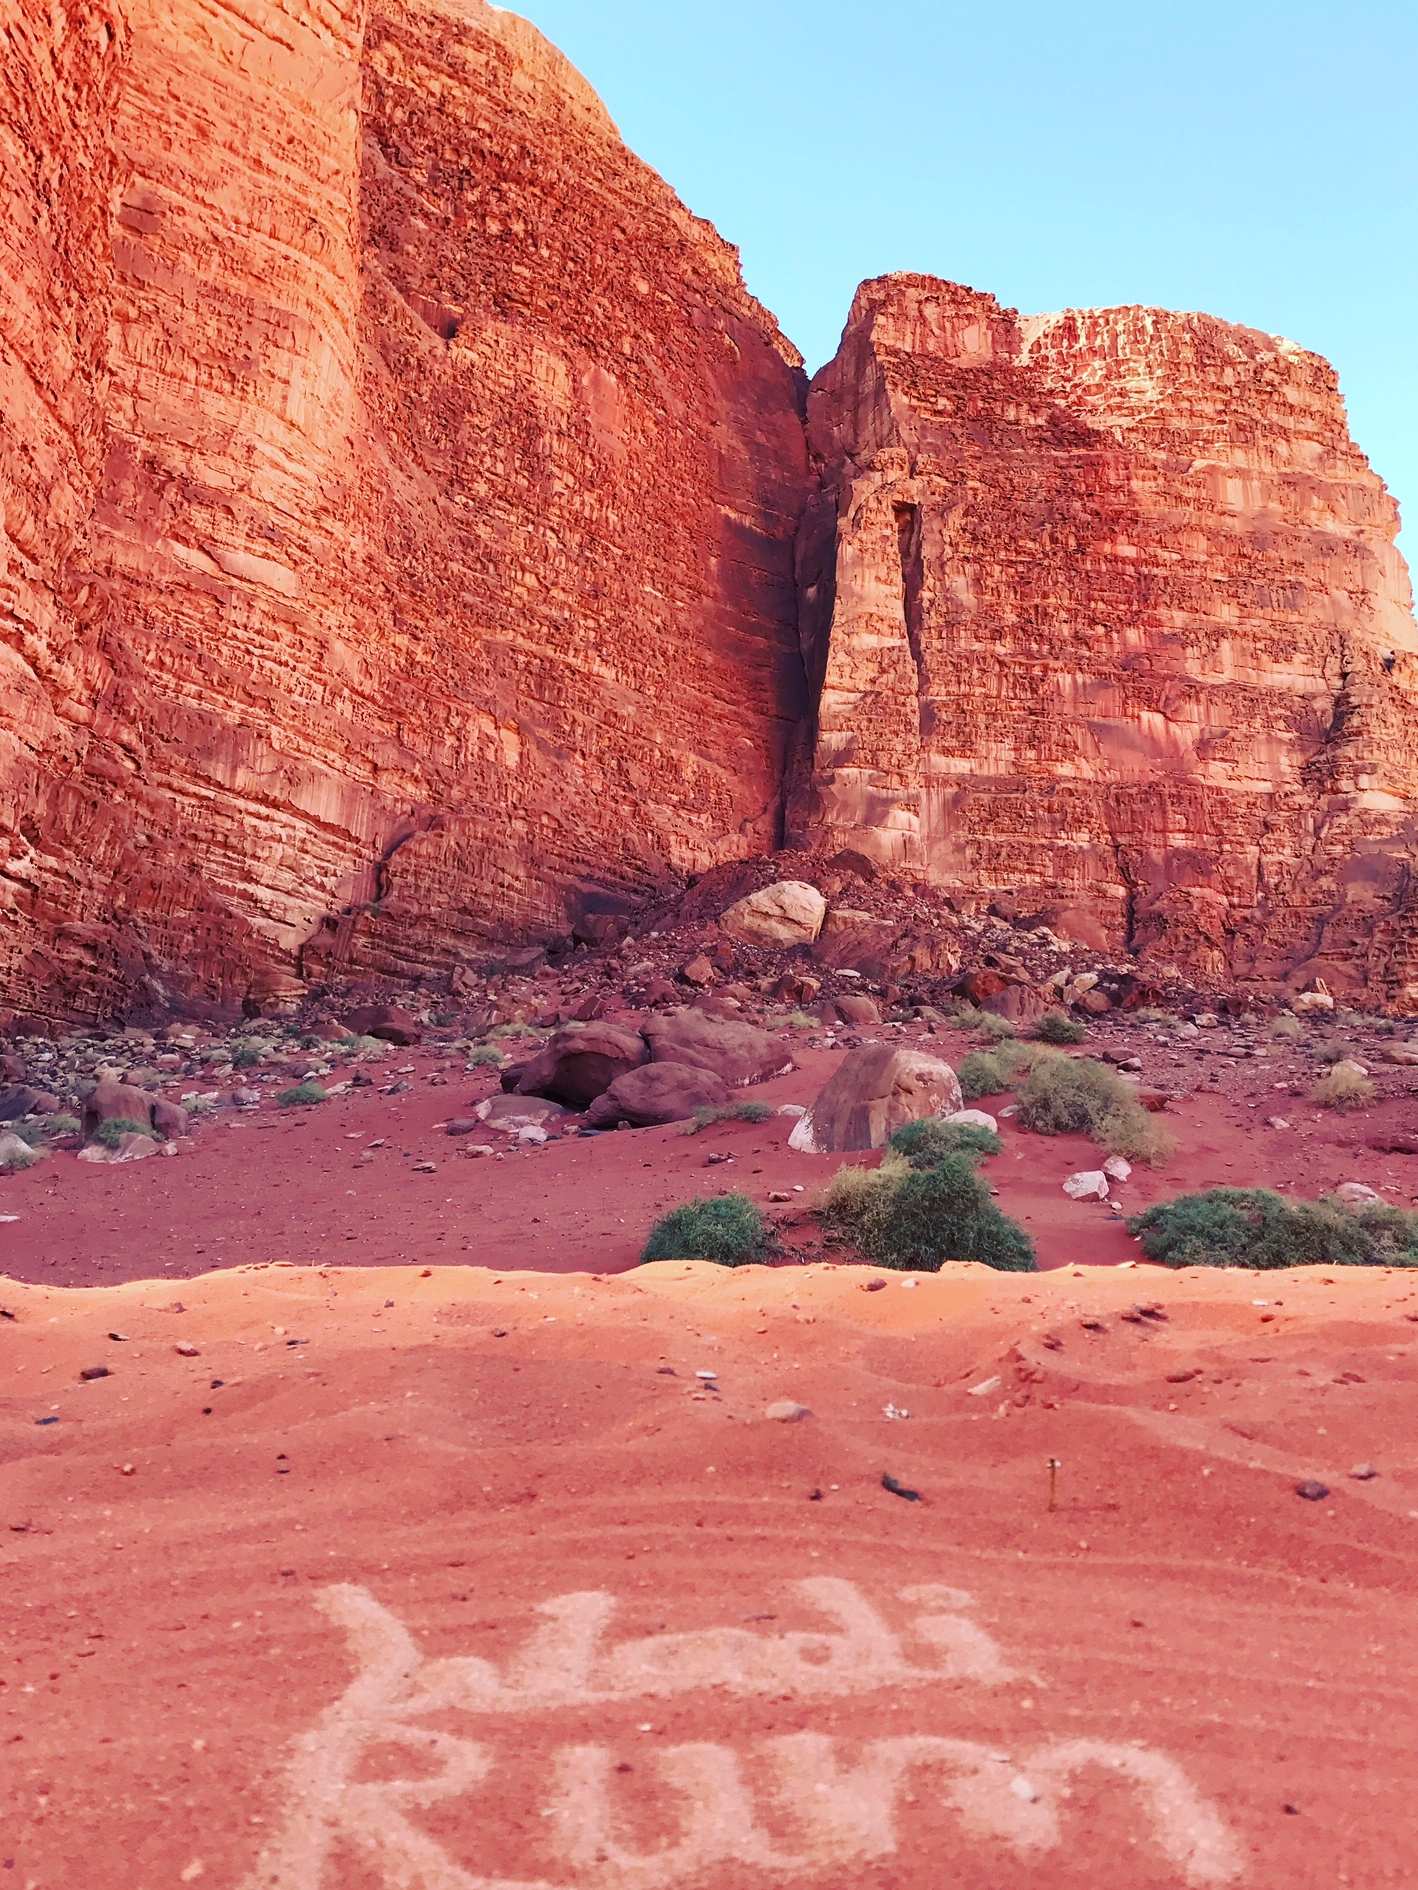 Many of the rocks in Wadi Rum look like melting chocolate